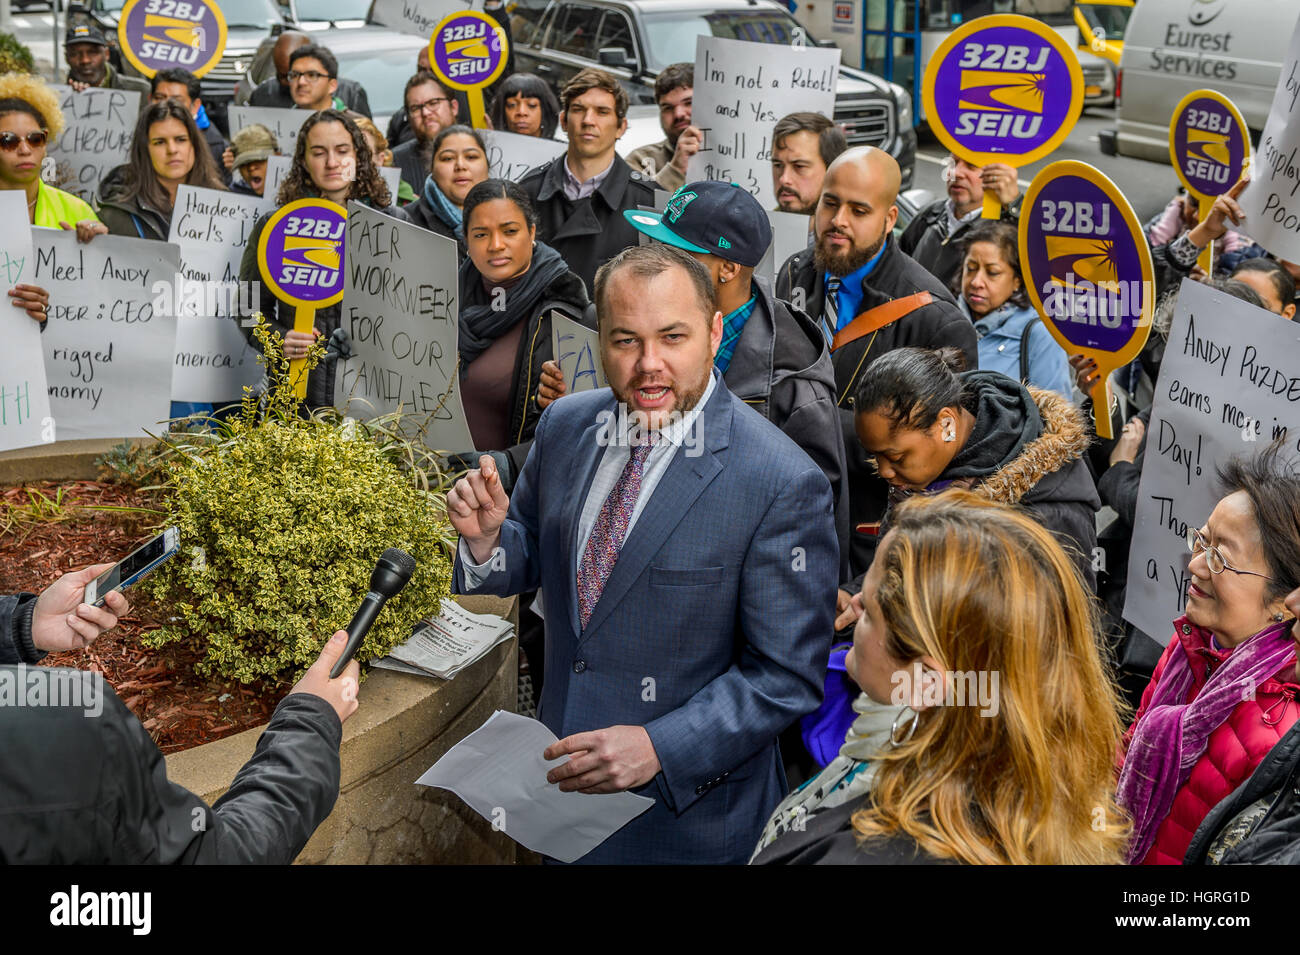 New York, United States. 12th Jan, 2017. New York City Council Member Corey Johnson - On Thursday, January 12, 2017, - Stock Image